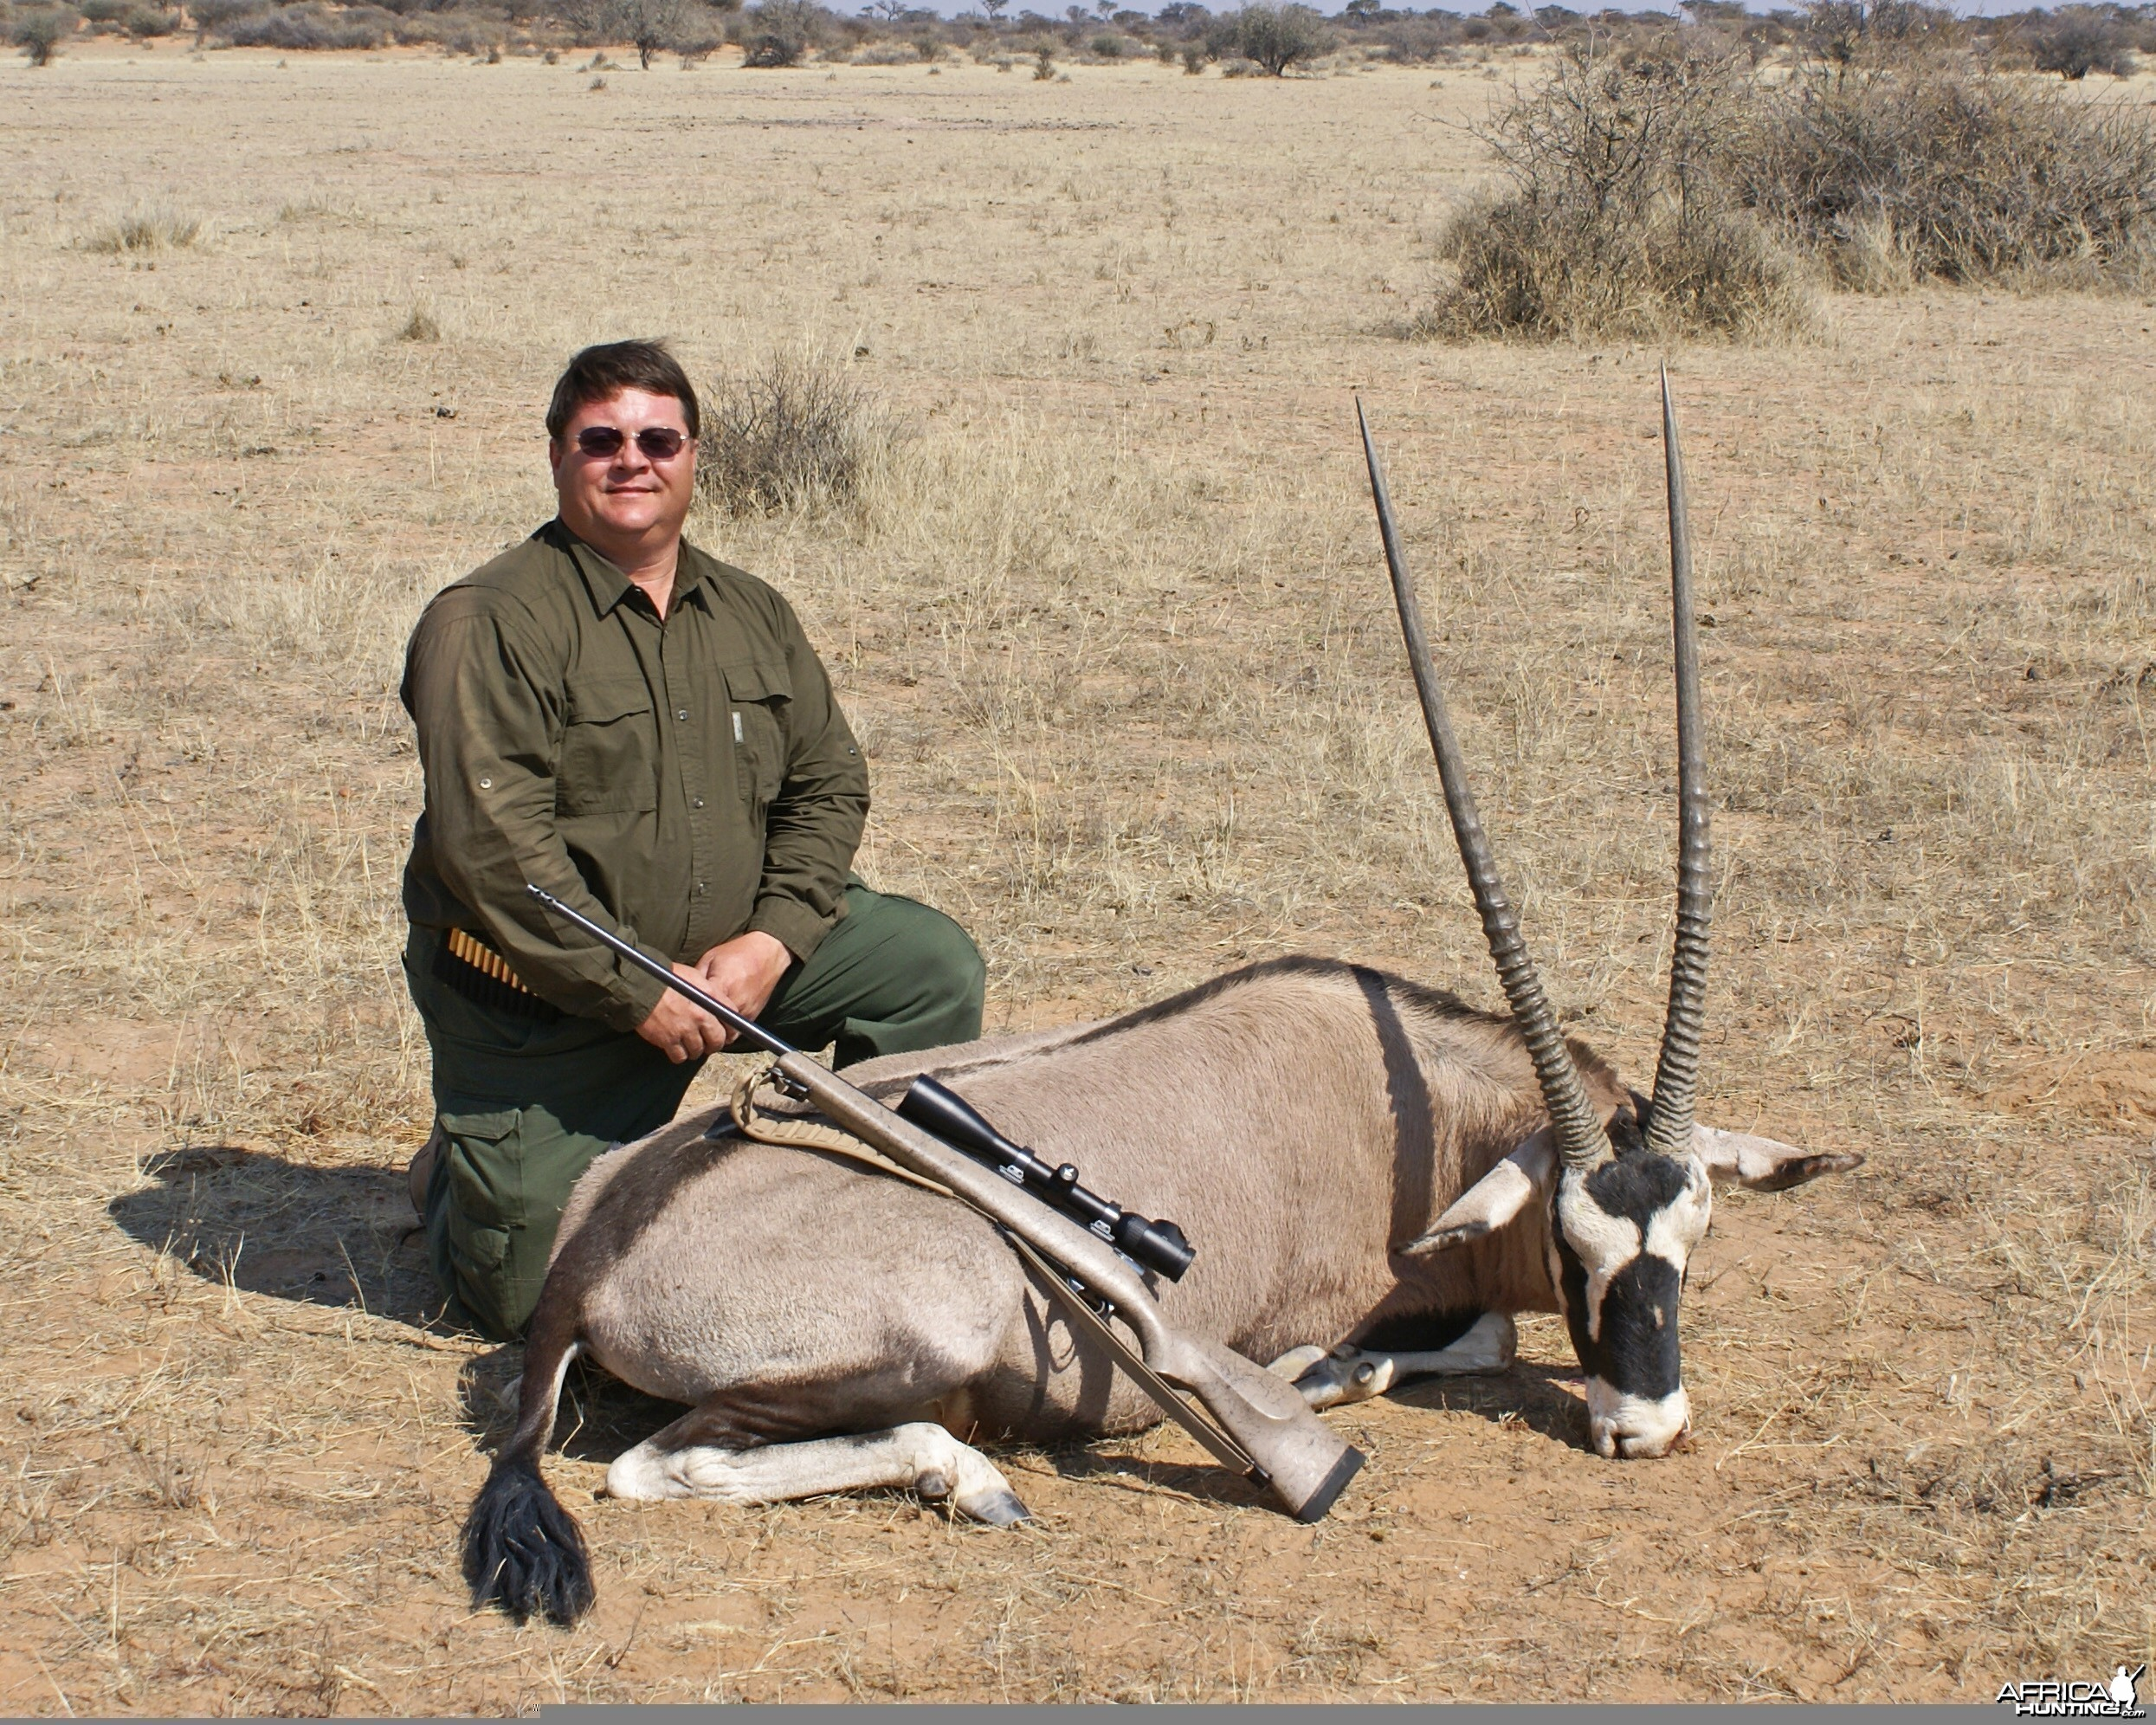 Hunting in Namibia